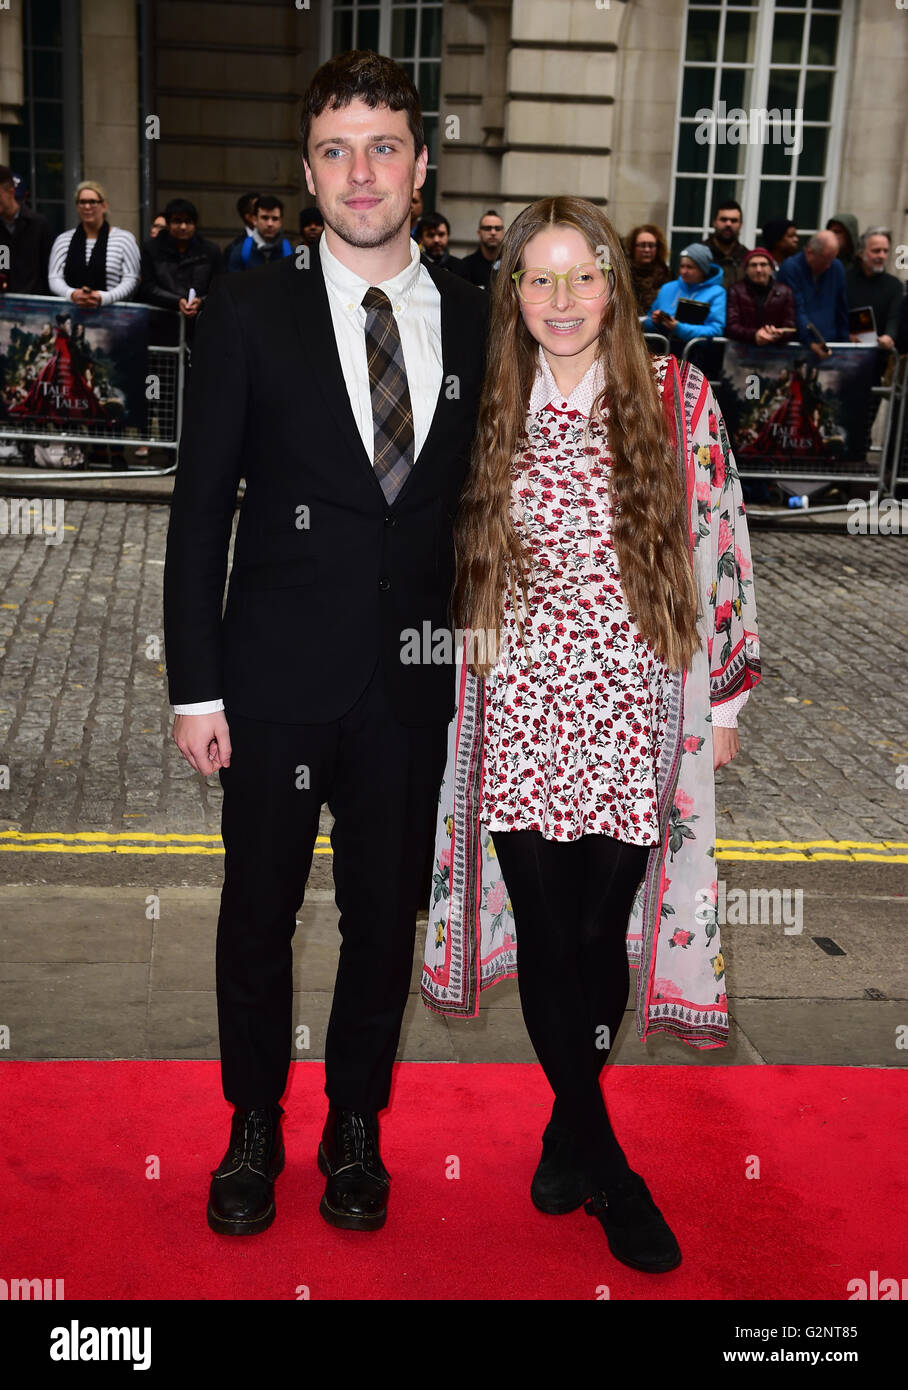 jessie cave dating Jessie cave (now) - jessie cave is one hard worker sure, lavender brown wasn't one of the more memorable characters in harry potter, but cave has leveraged the role into a string of steady projects.